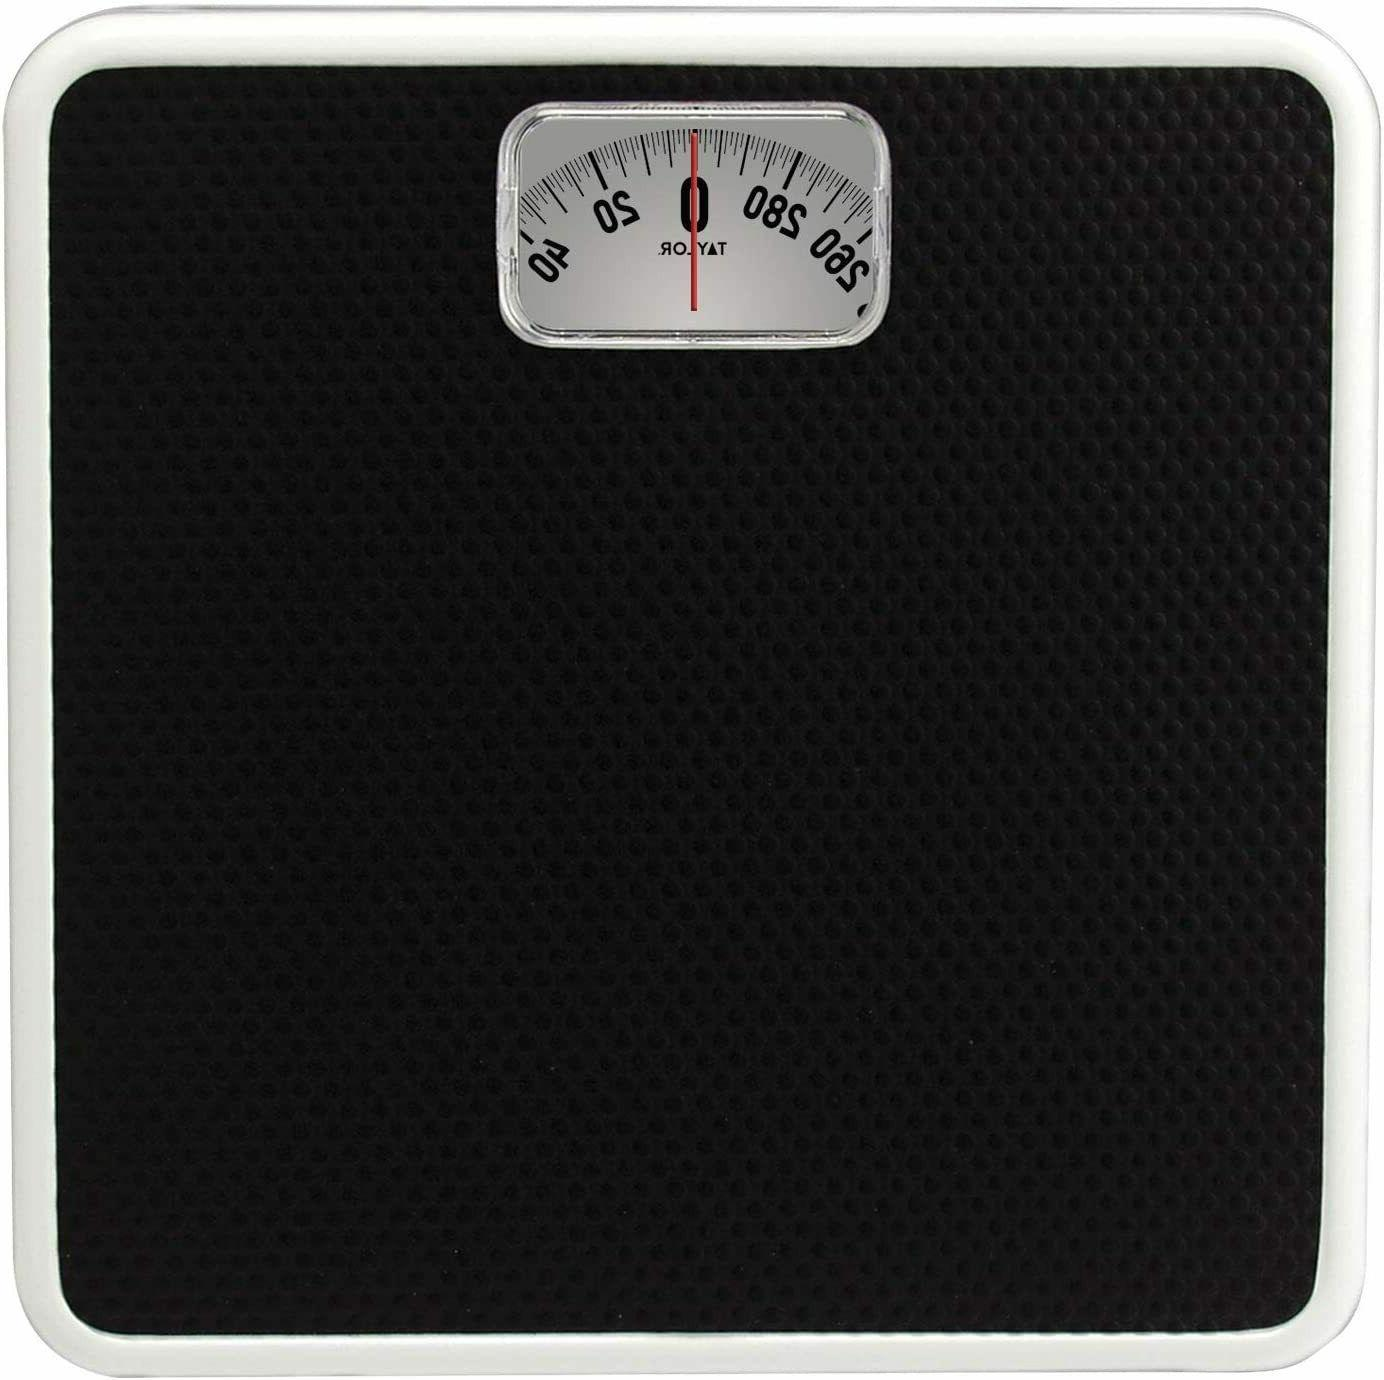 bathroom body weight scale analog mechanical manual